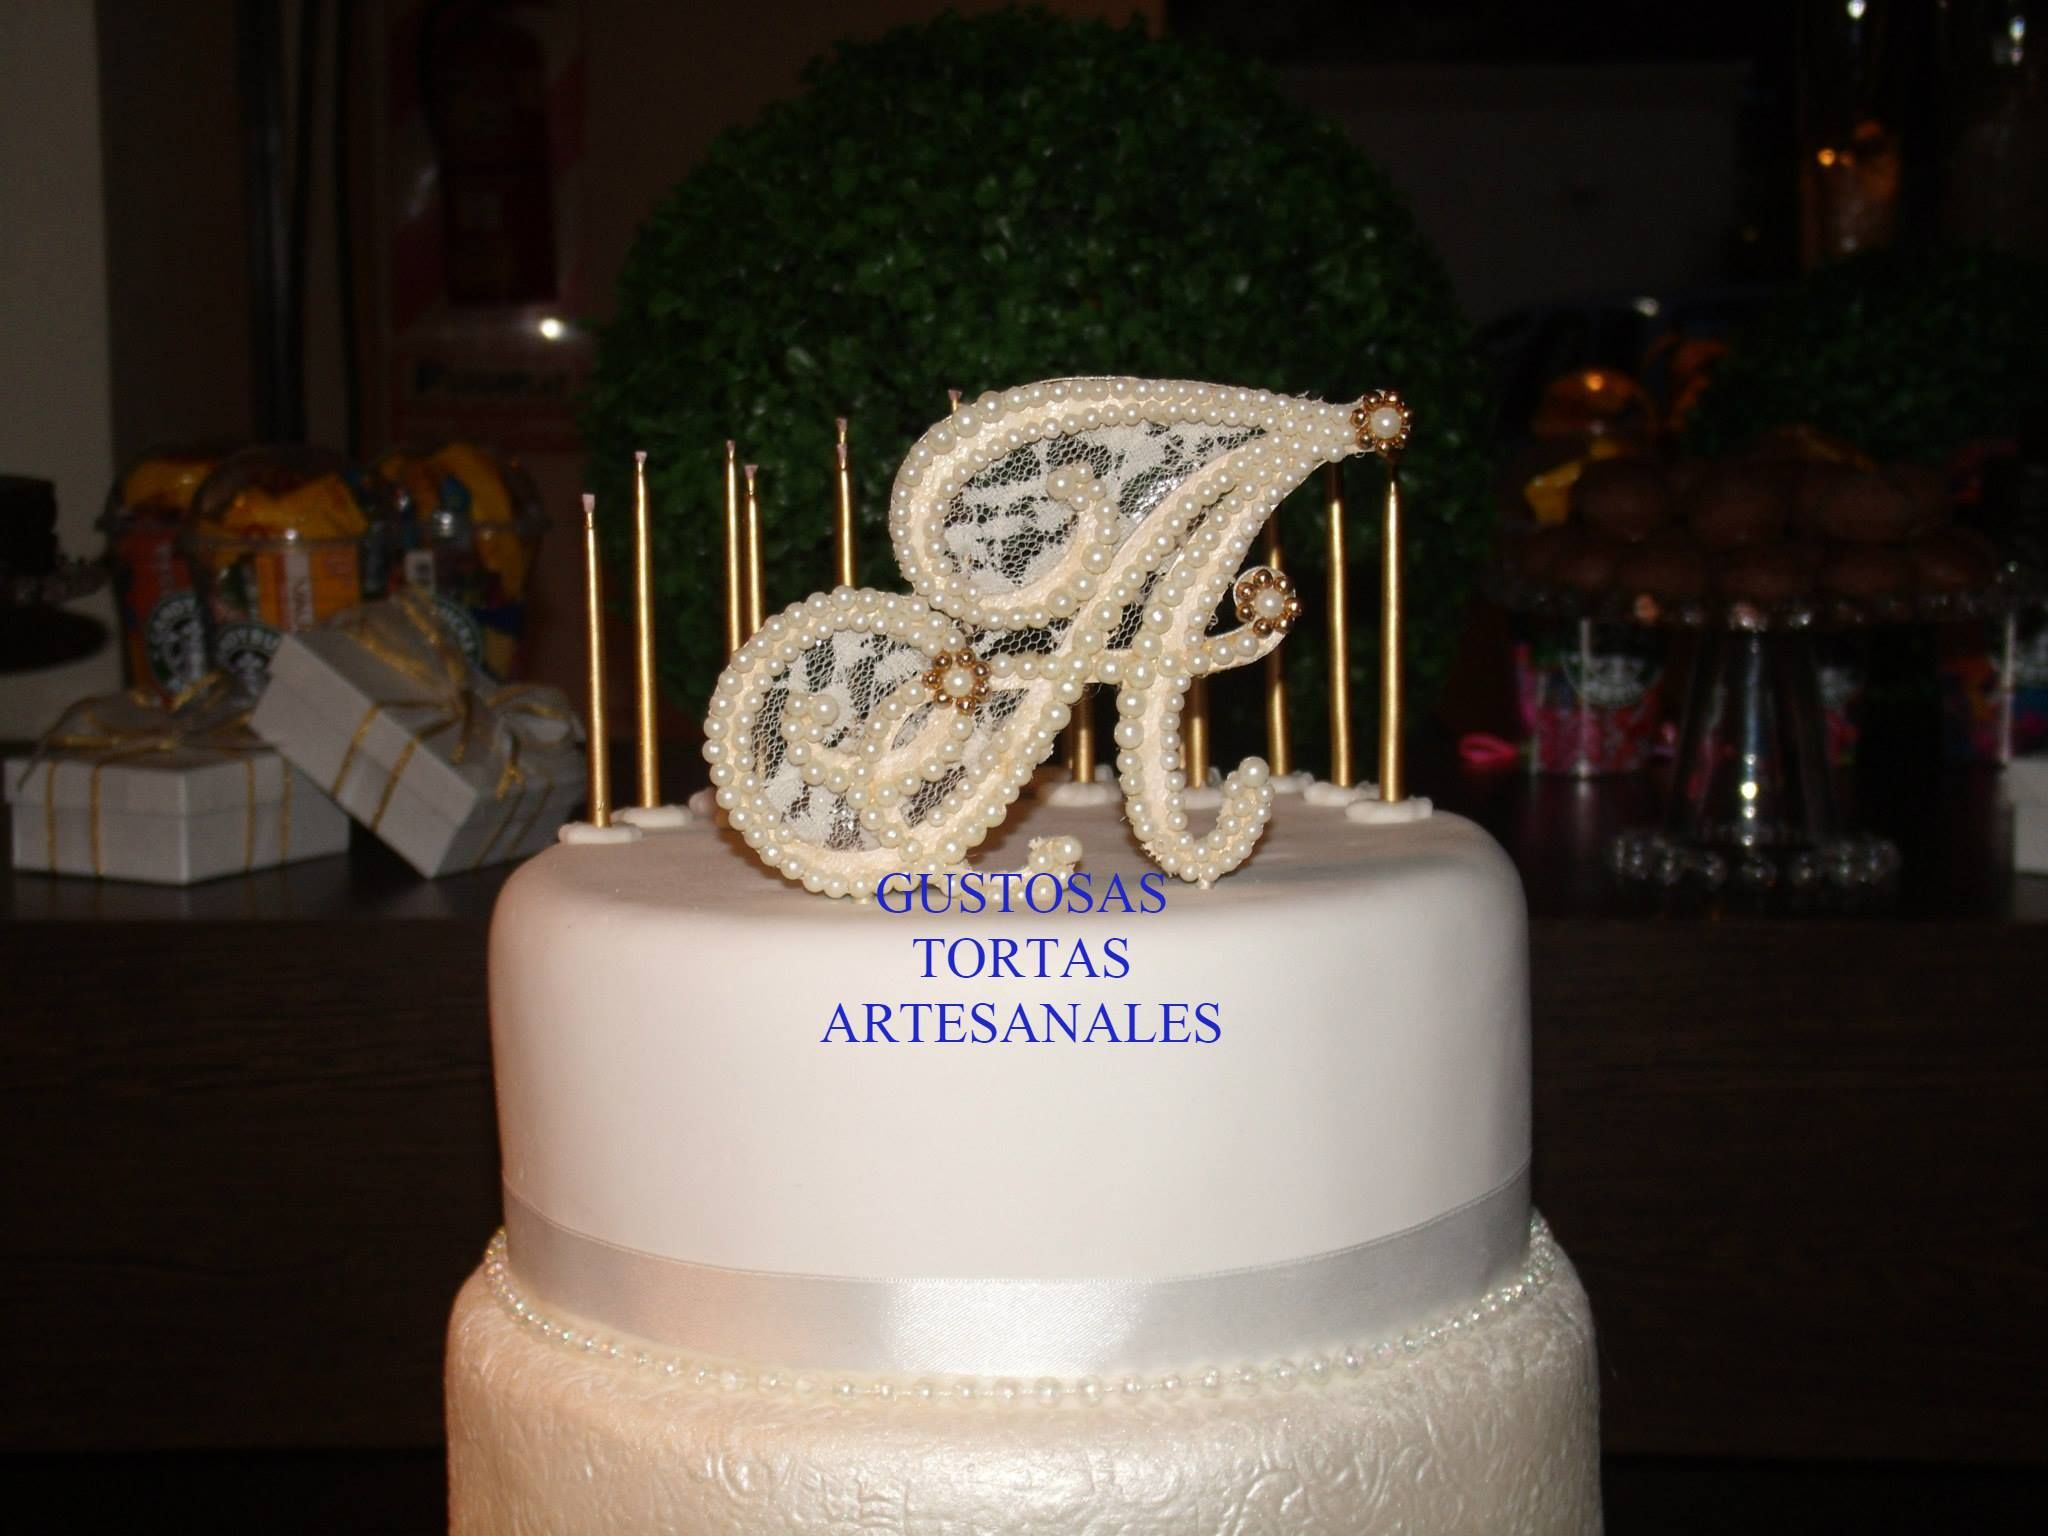 Pin by MONICA GUSTOSAS TORTAS ARTESANALES on CAKES 15 YEARS